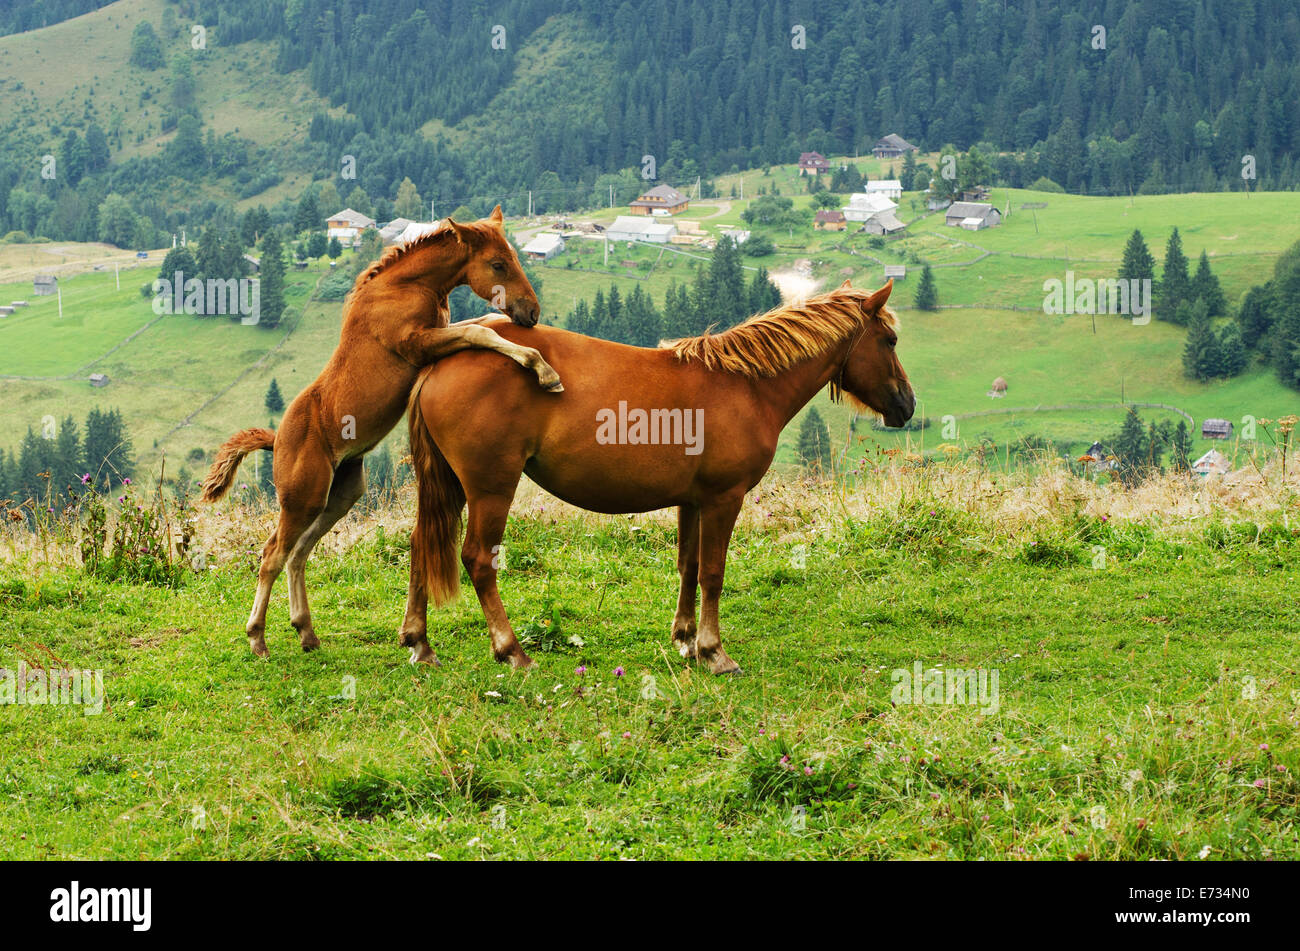 Bay horses playing in the mountains - Stock Image